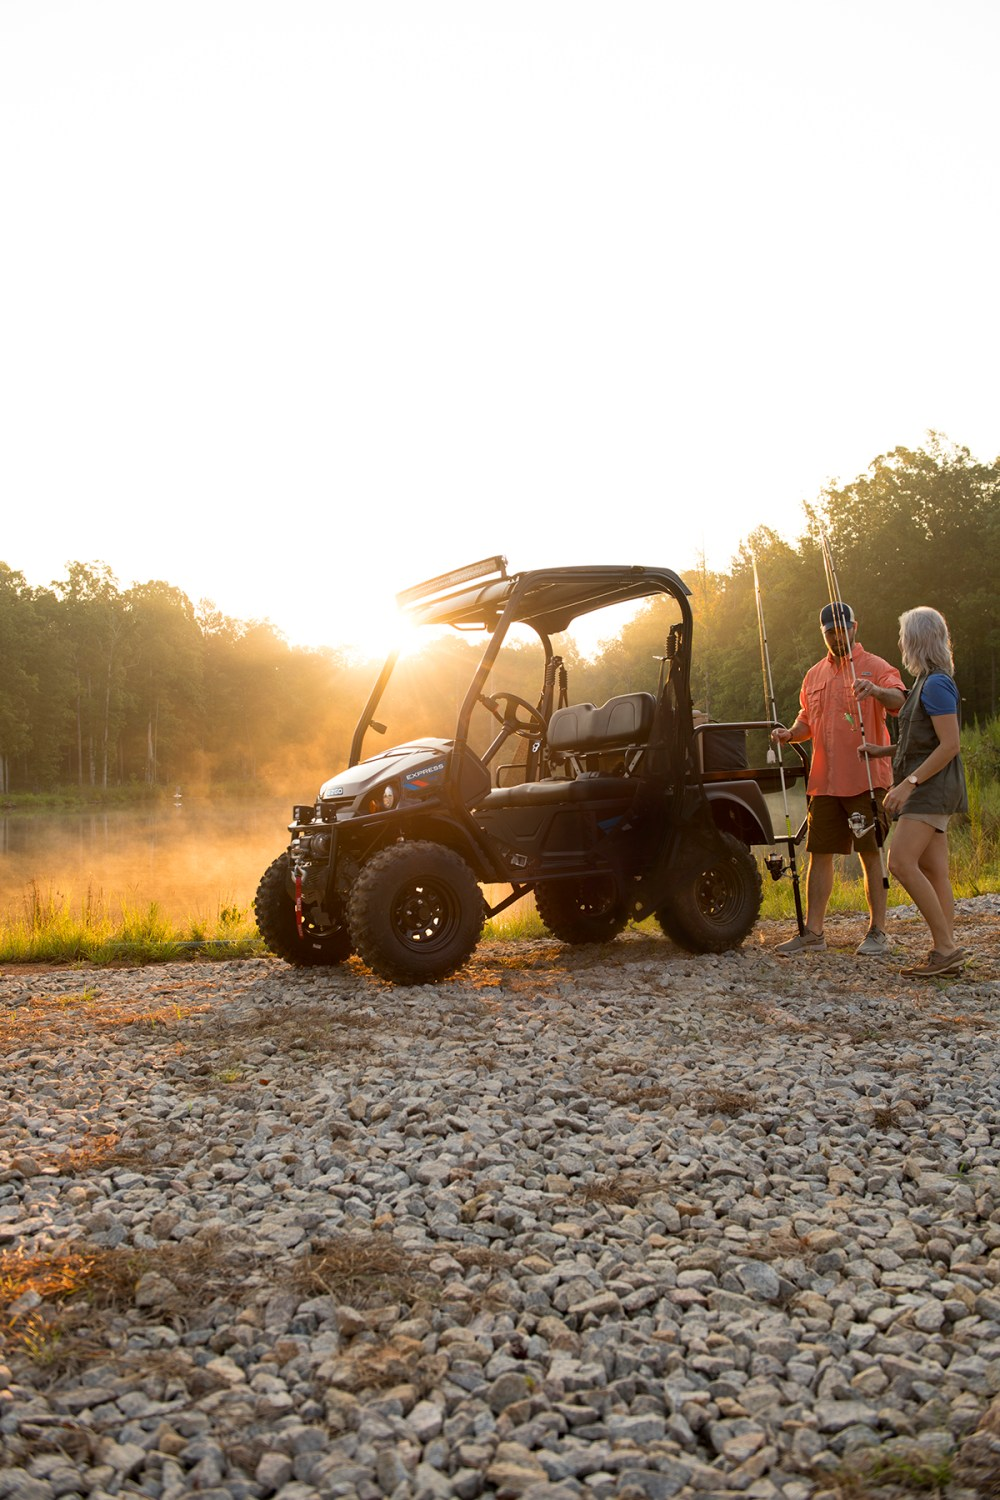 medium resolution of learn more about the express 4x4 and the complete line of e z go personal transportation vehicles at ezgo com personal